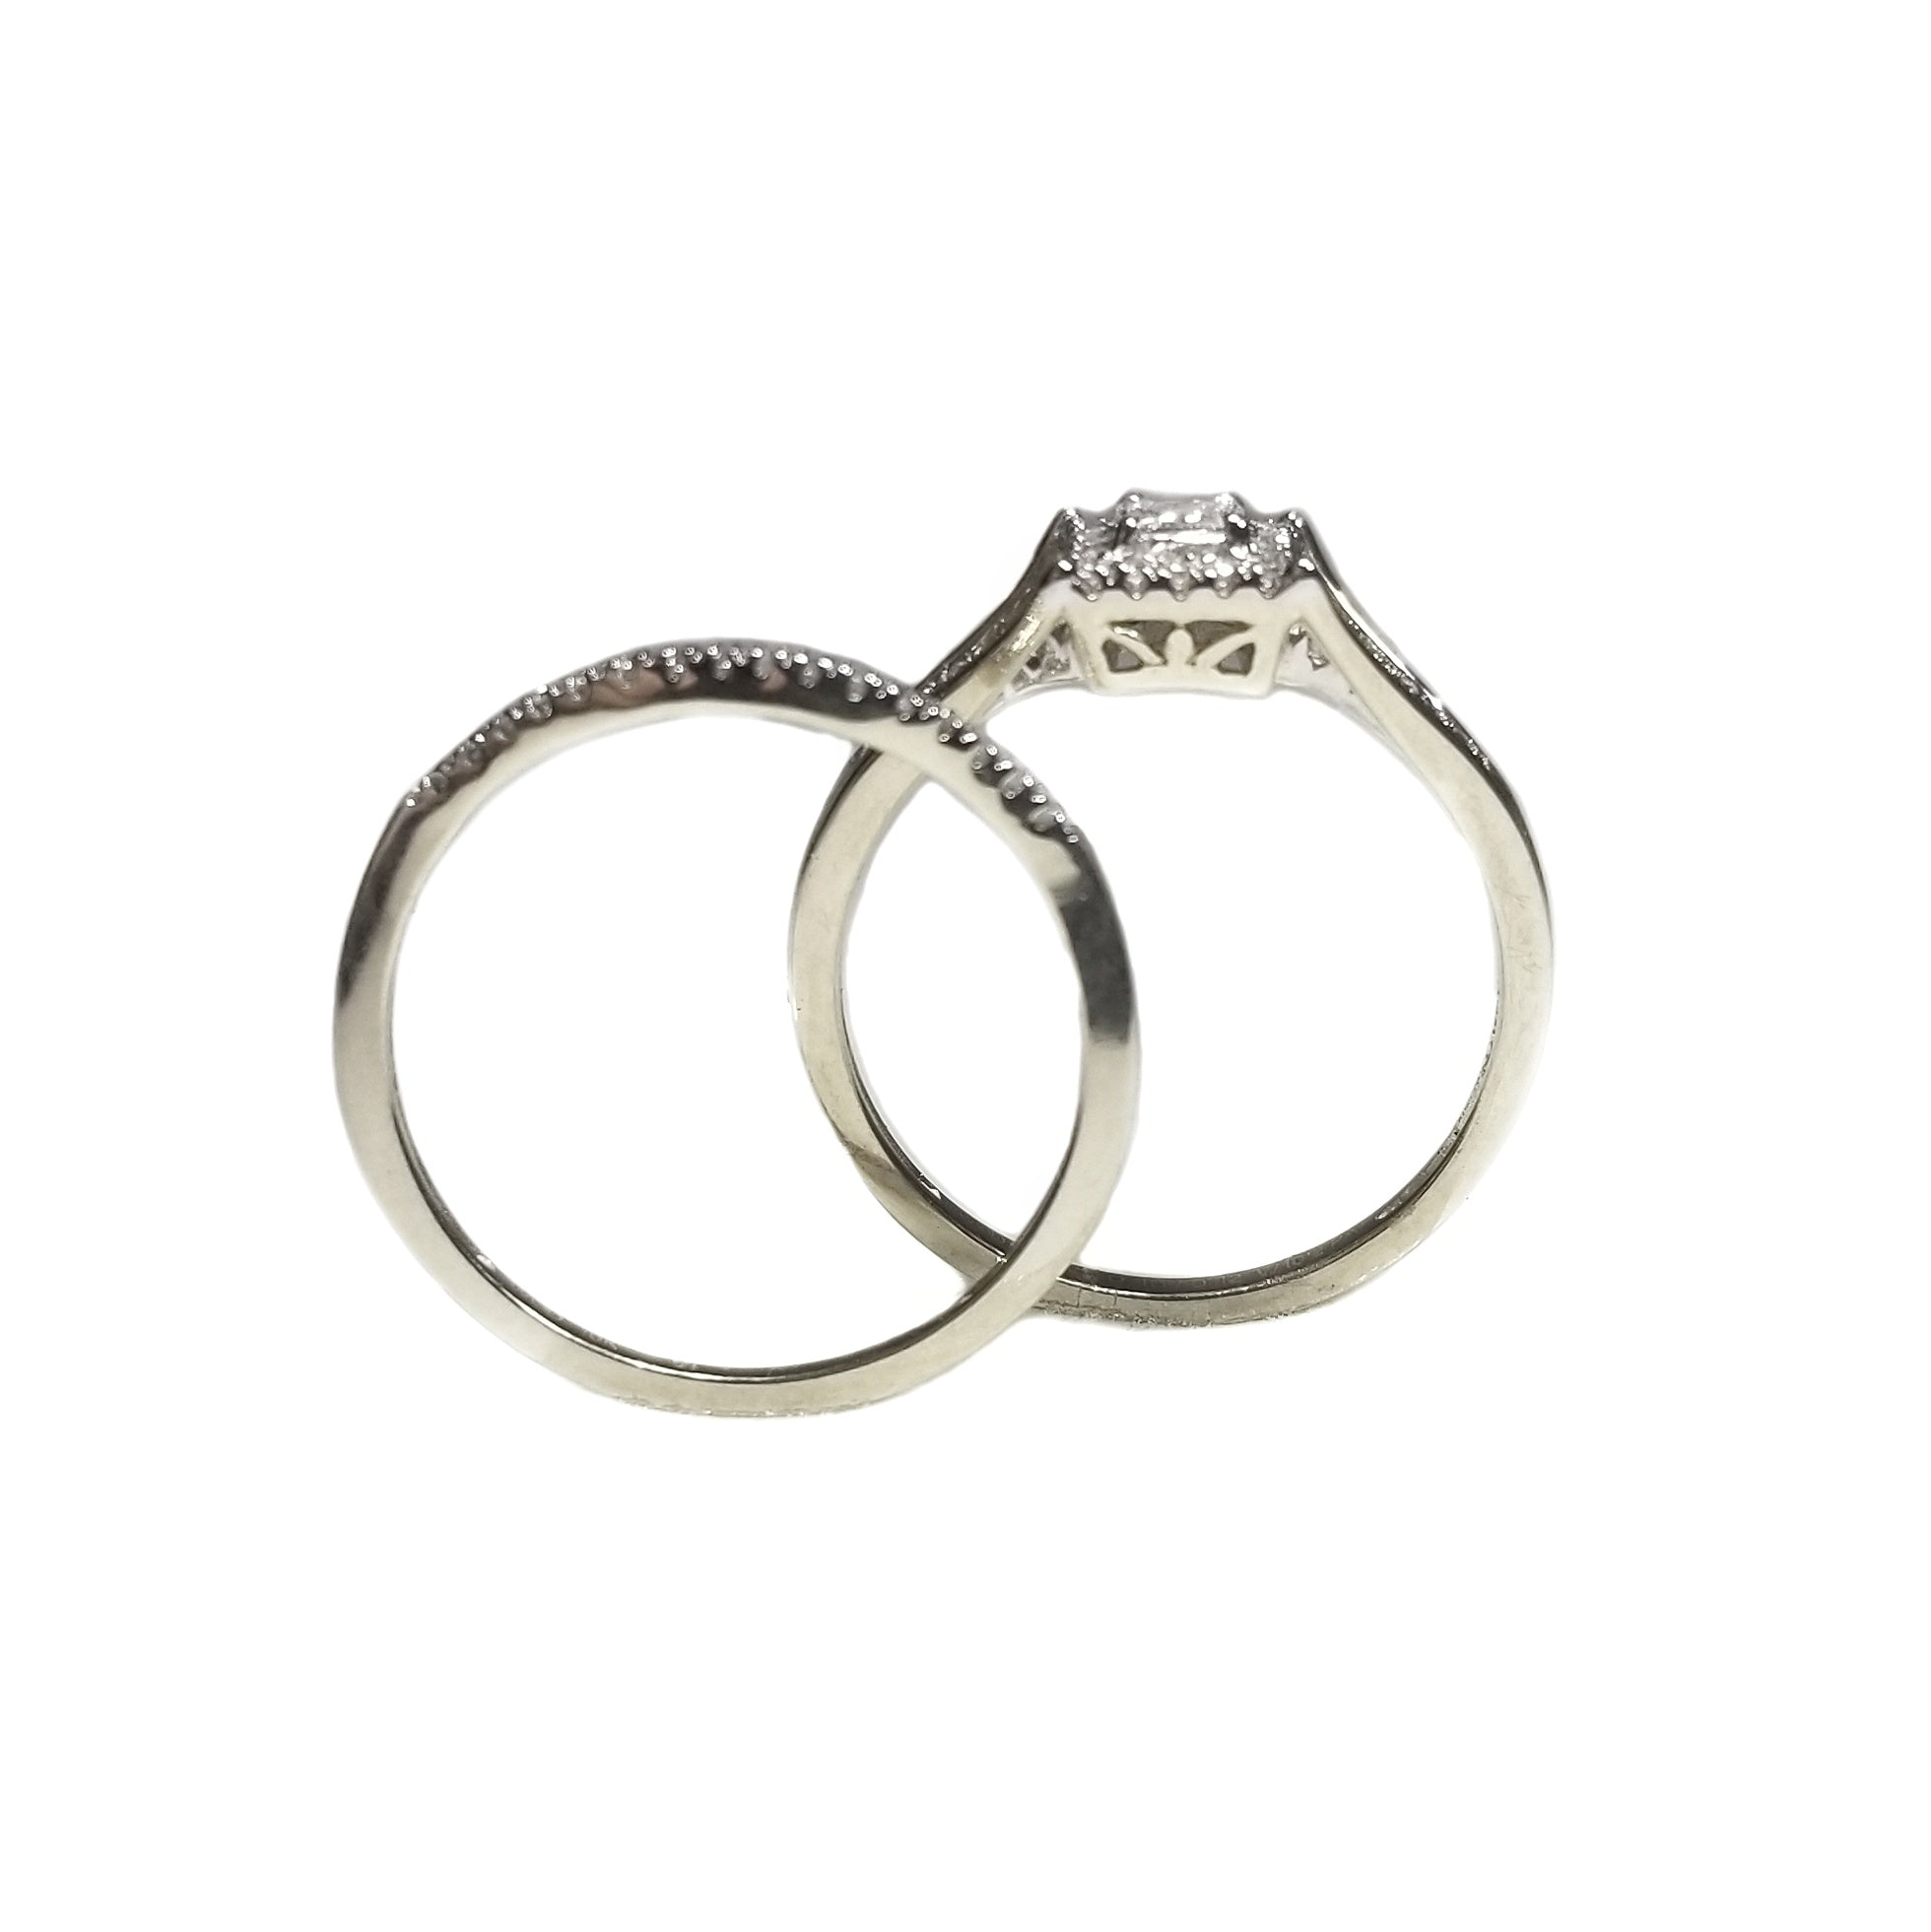 Engagement ring and wedding band duo set in 10k white gold